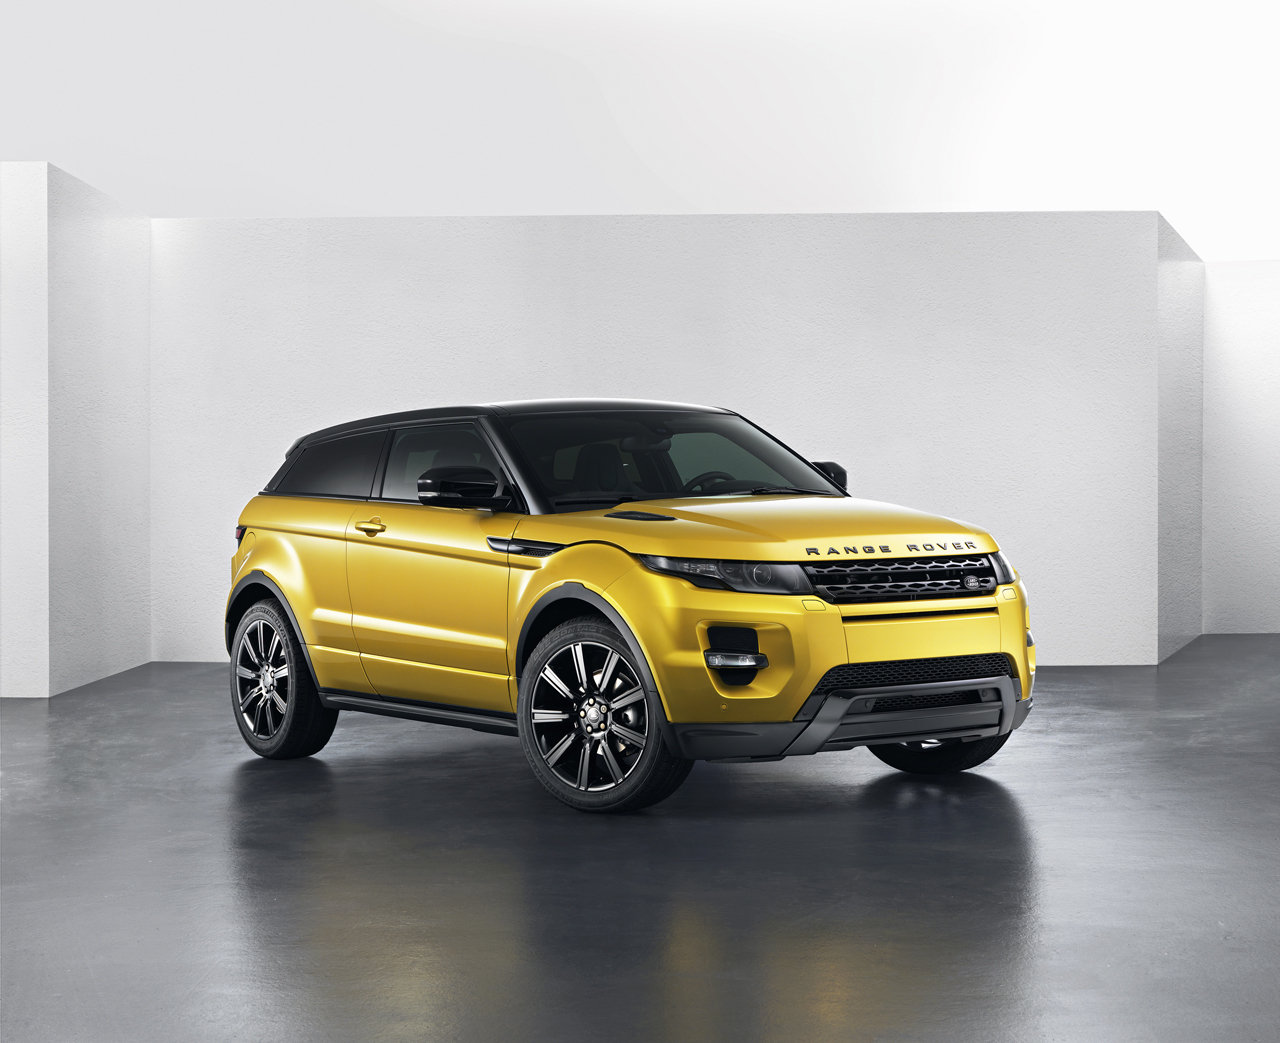 2013 range rover evoque sicilian yellow edition picture 489301 car review top speed. Black Bedroom Furniture Sets. Home Design Ideas